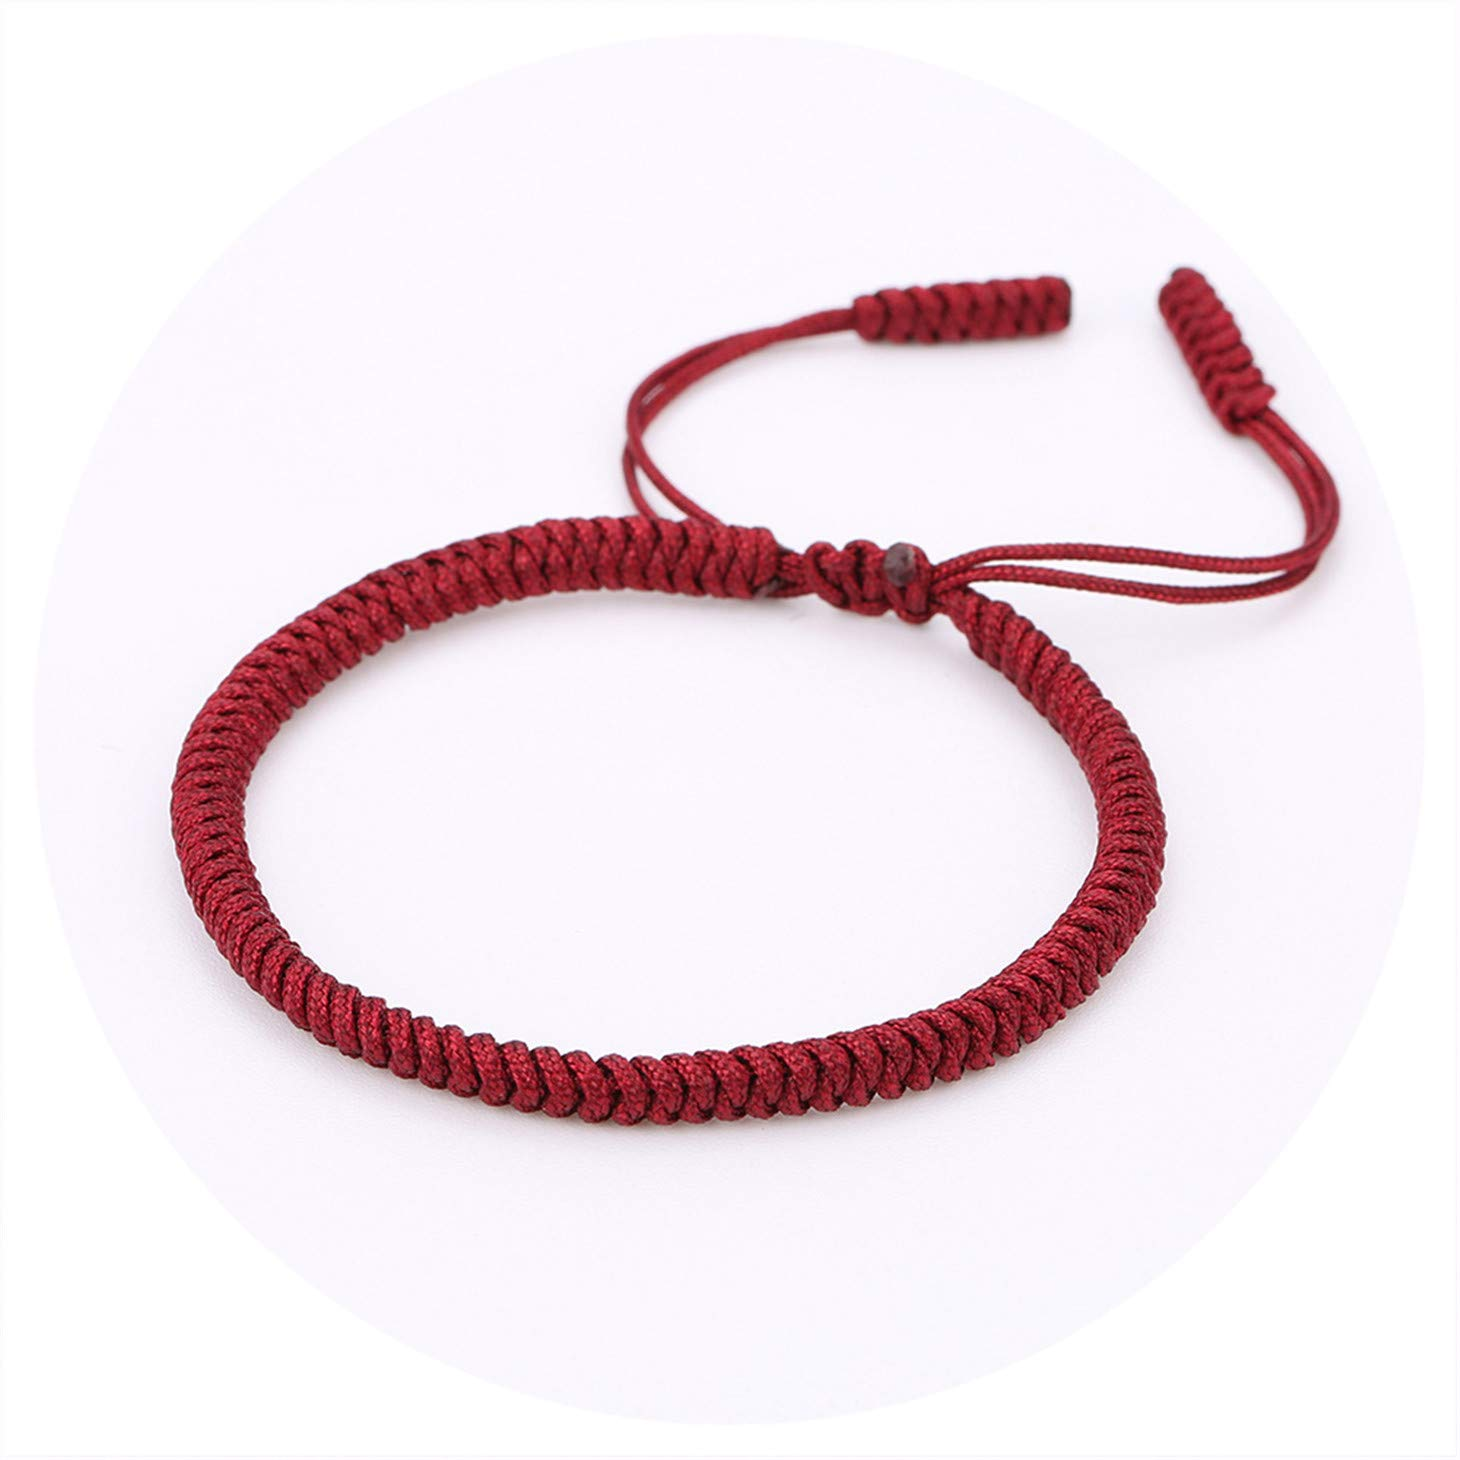 17 Colors Original Tibetan Buddhist Lucky Tibetan Bracelets & Bangles for Women Men Handmade Knots